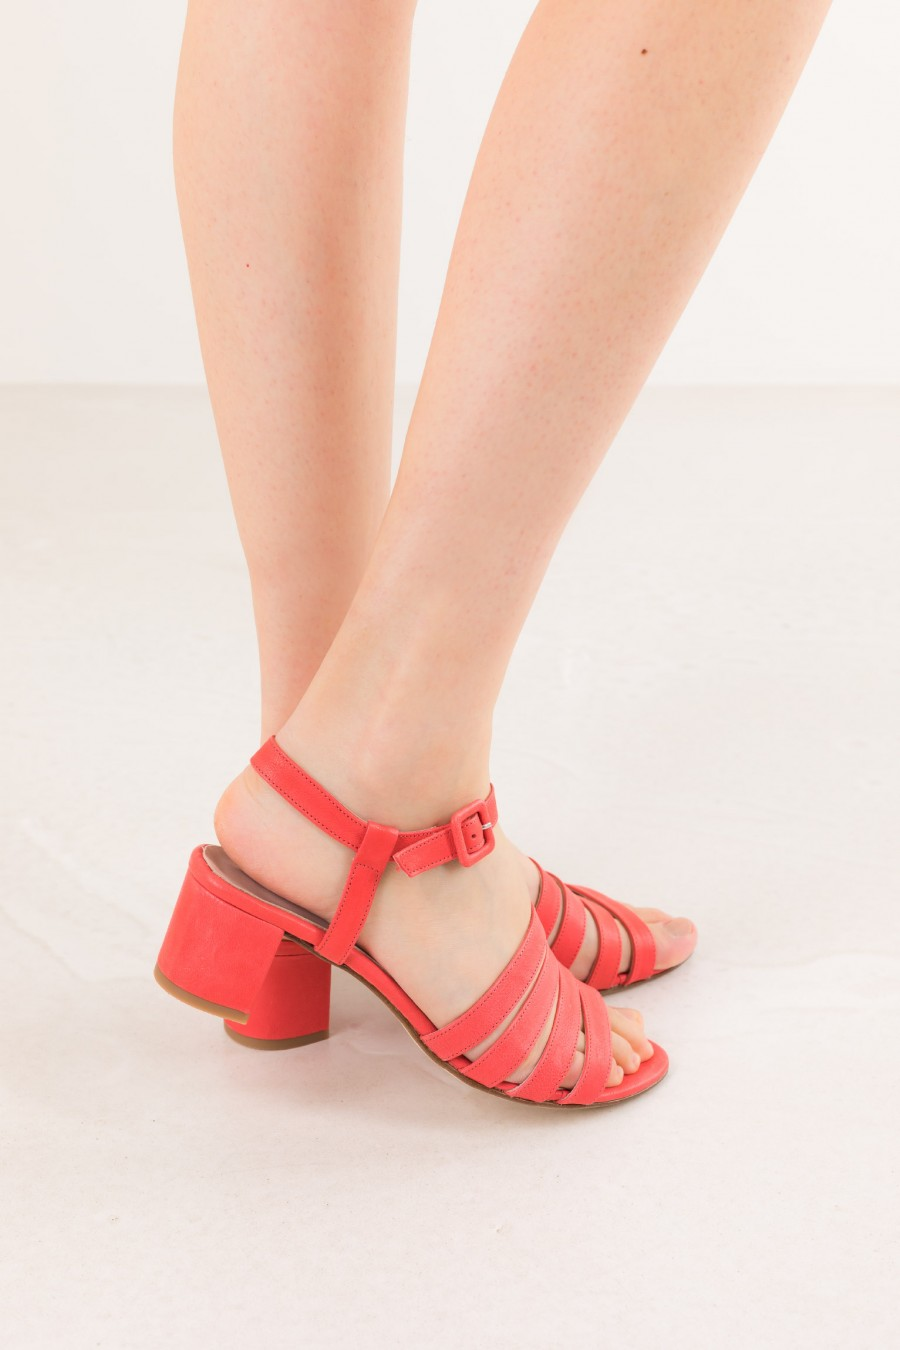 Coral red sandals with lists